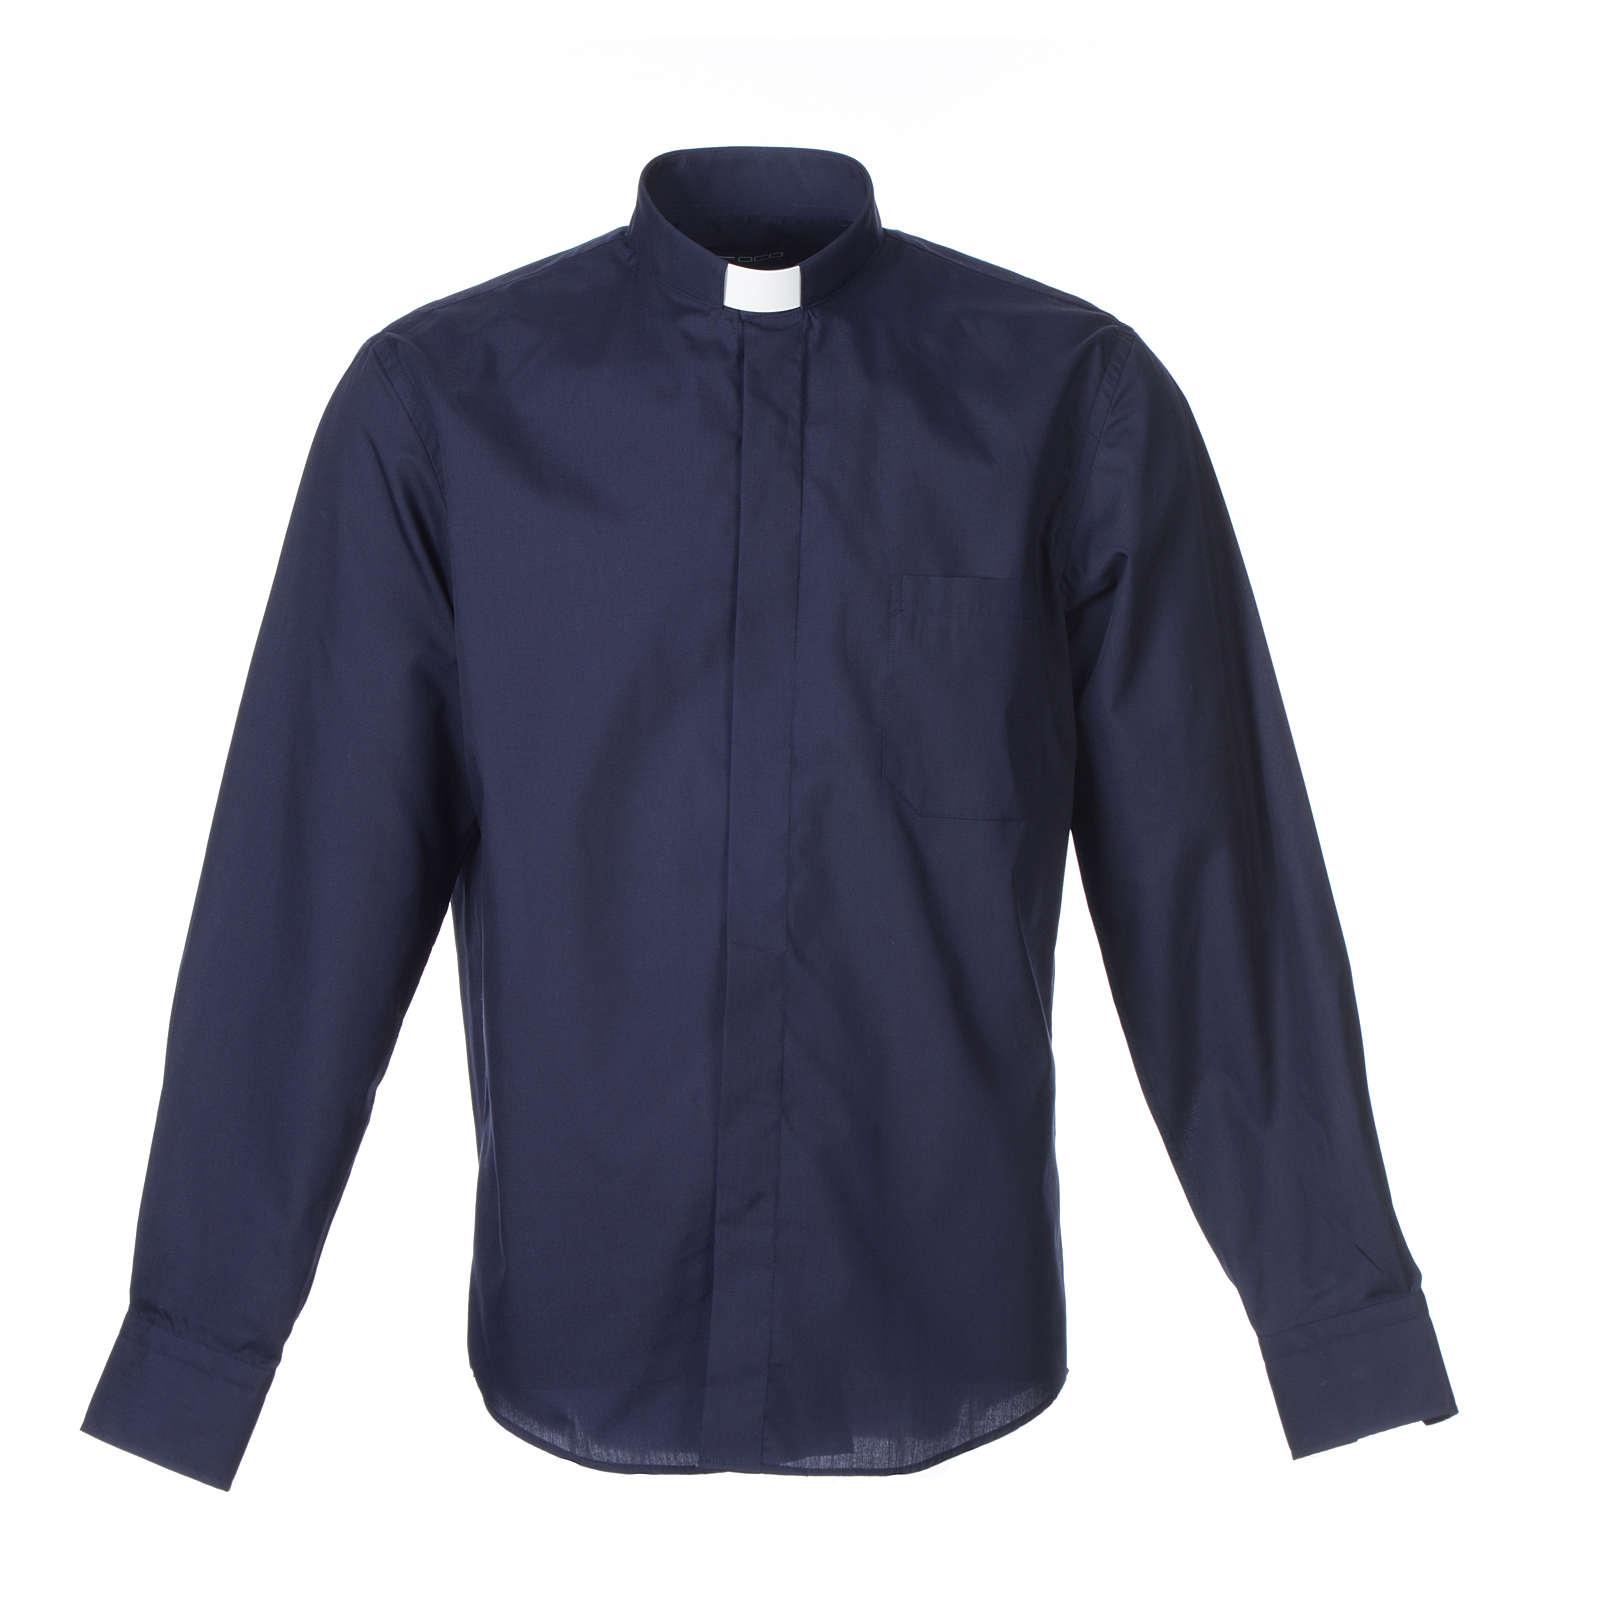 Camisa Clergy Manga Larga Color Uniforme Mixto Algodón Azul 4